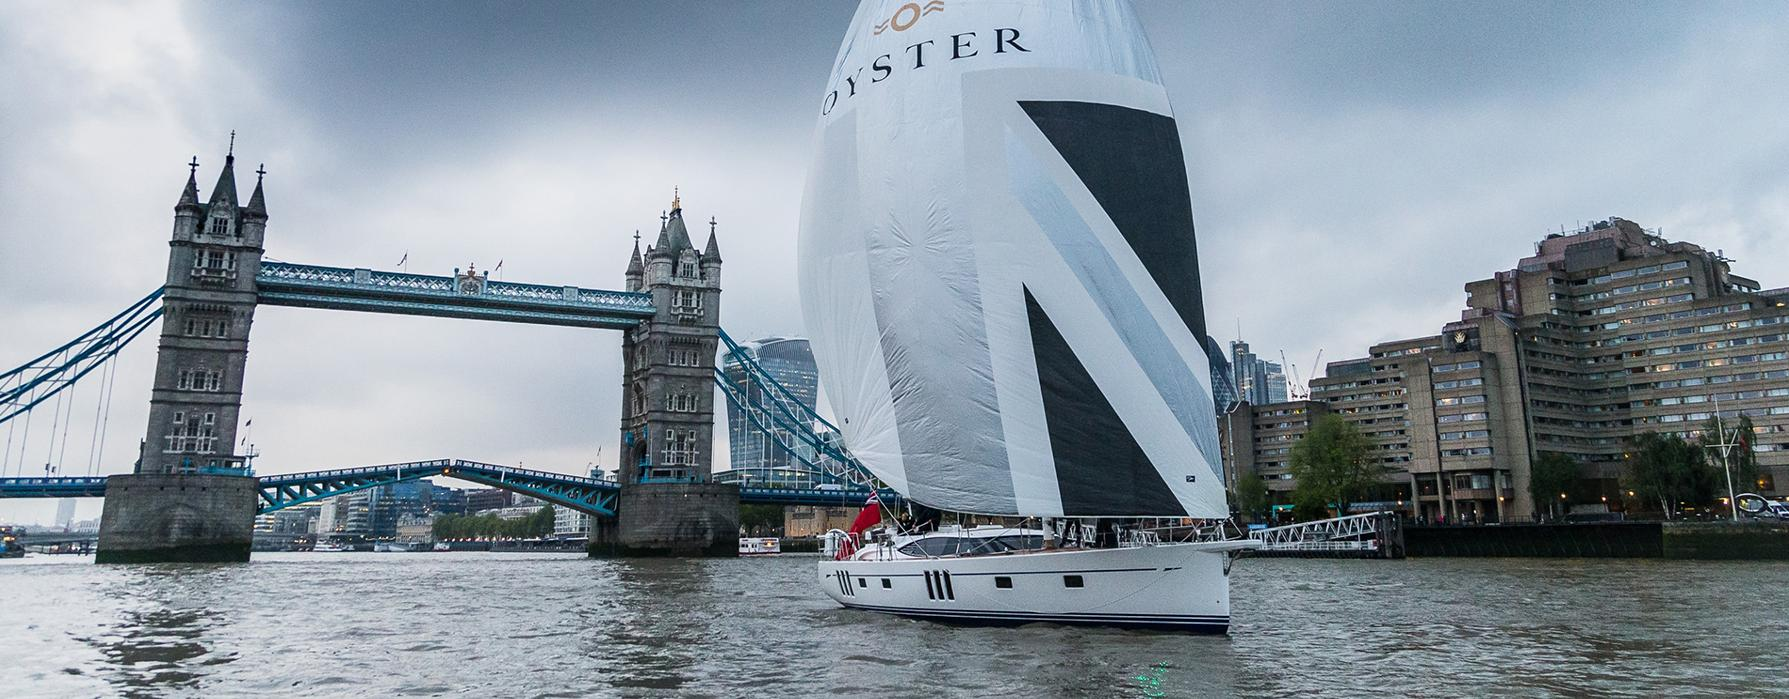 Oyster Yachts Sailing Events & Boat Show Calendar